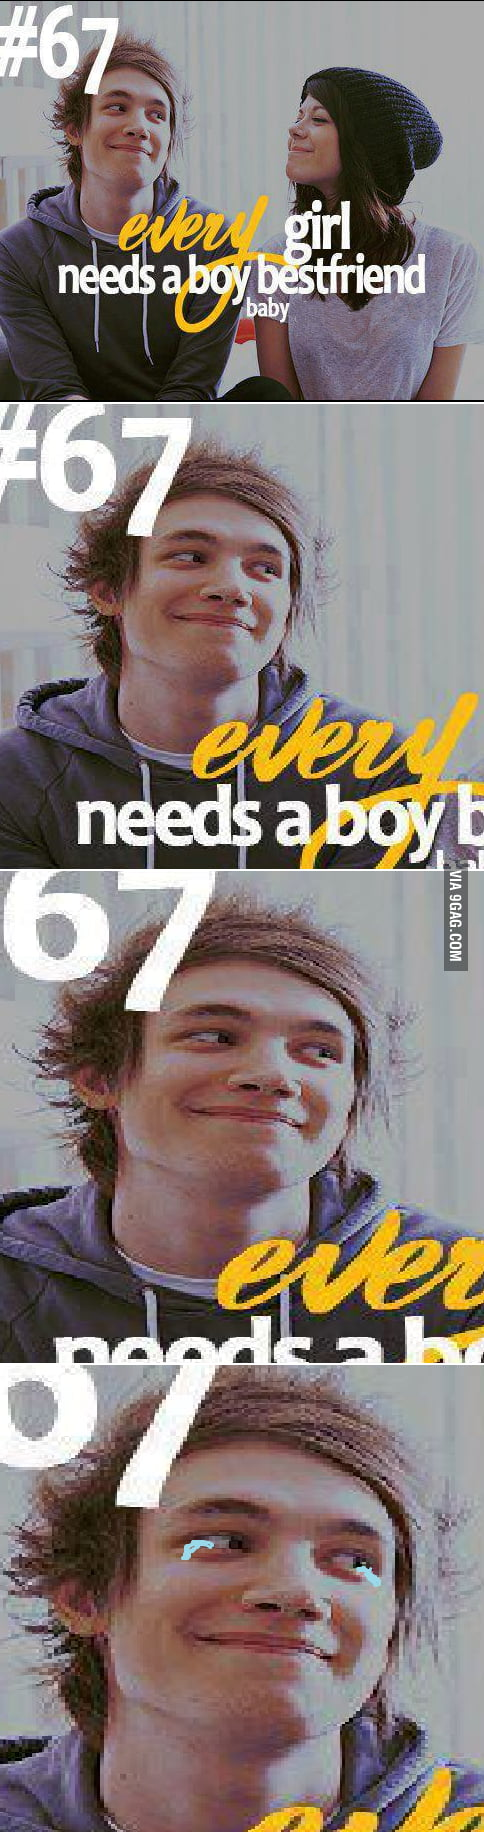 Every girl needs a boy best friend.